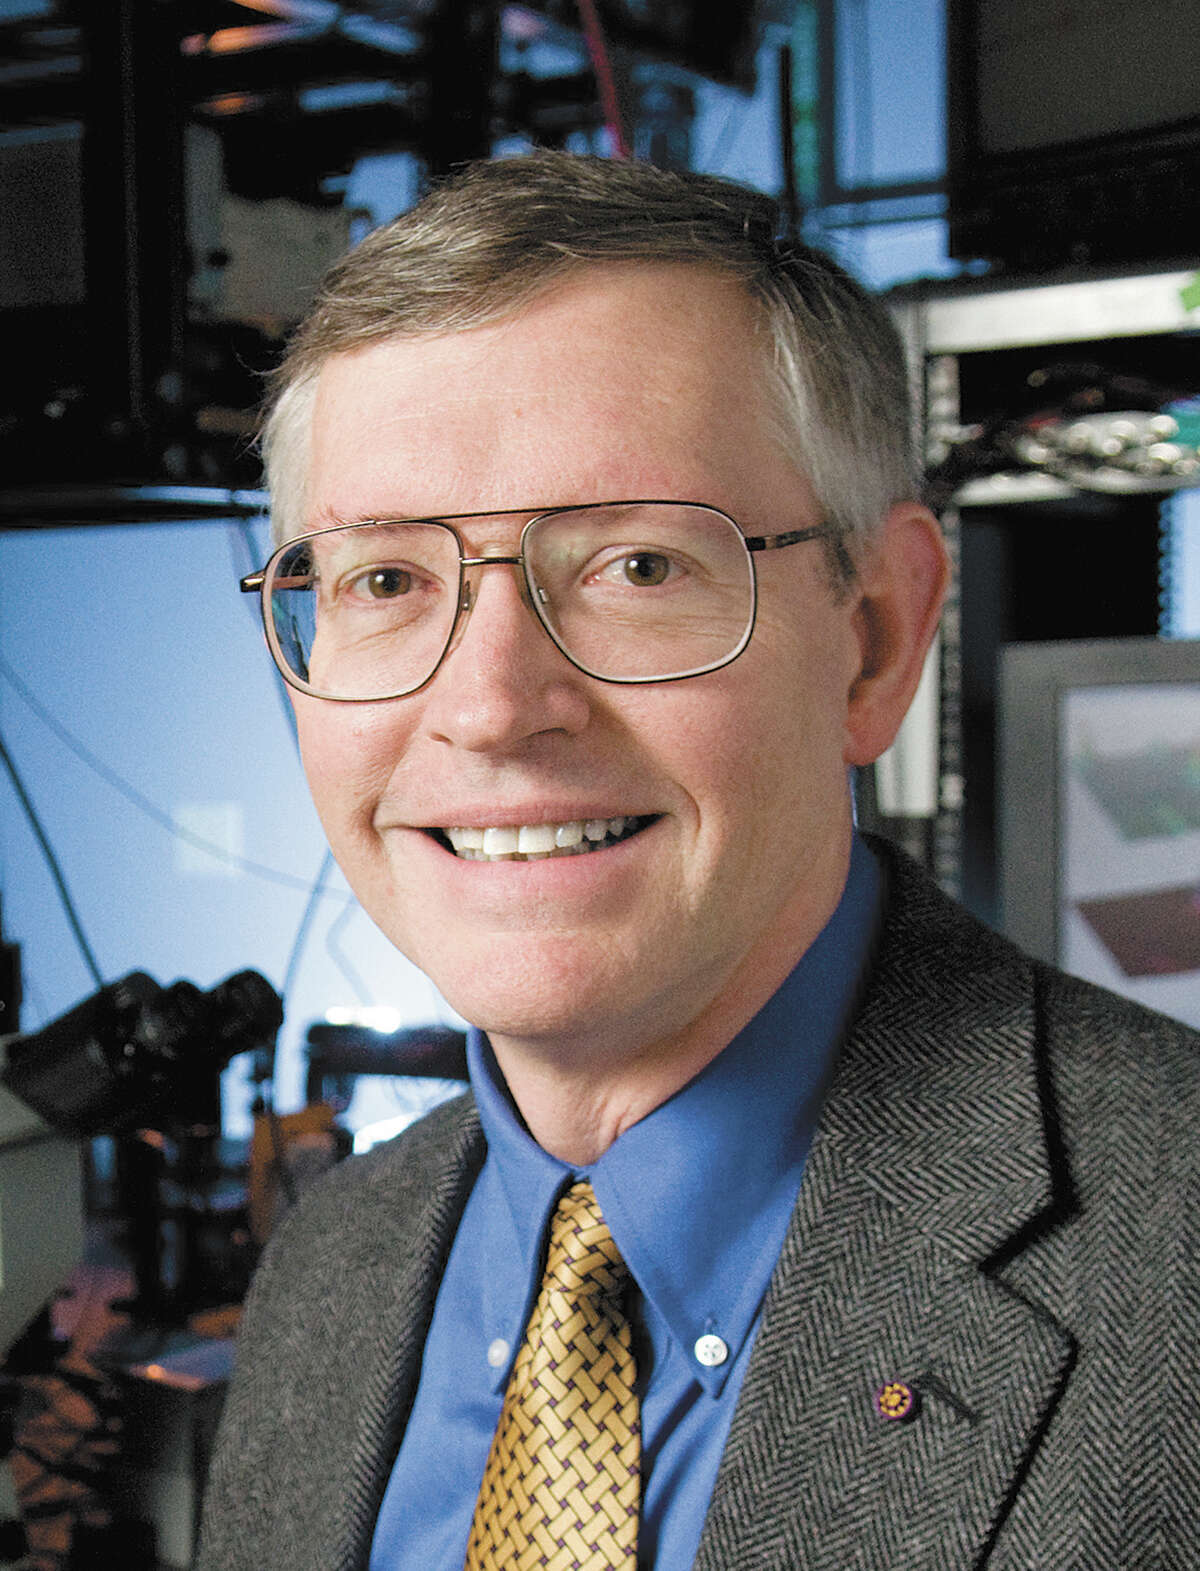 Dr. W.E. Moerner, a San Antonio native and scientist at Stanford University who won the Nobel Prize for chemistry in 2014, has been selected as the winner of this year's Palmaz Award. His work led to the development of the first super-resolution microscope.